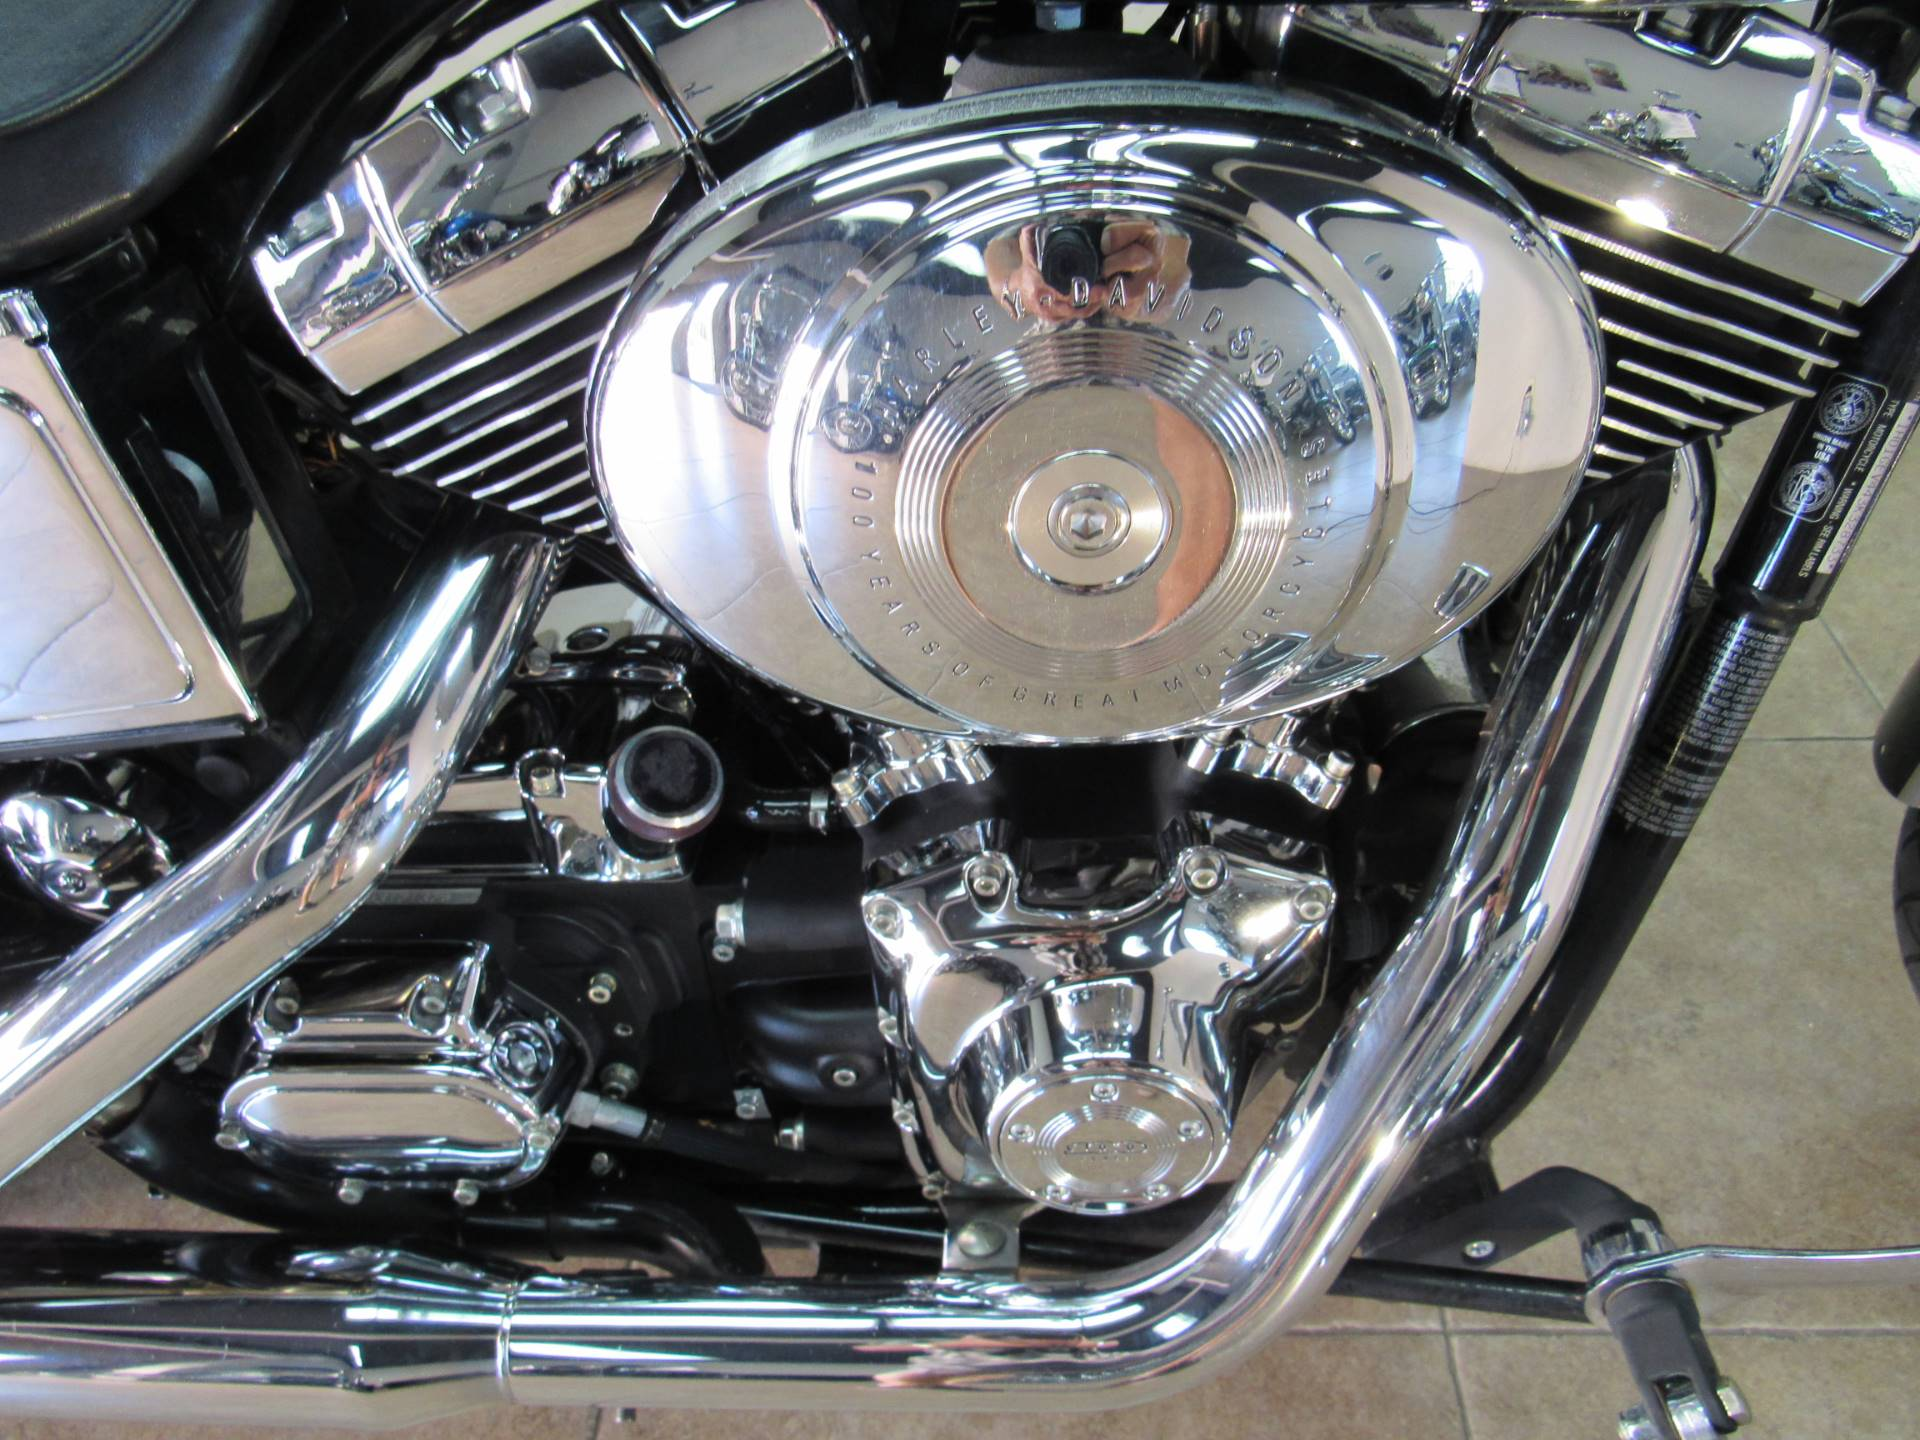 2003 Harley-Davidson FXDWG Dyna Wide Glide® in Temecula, California - Photo 6